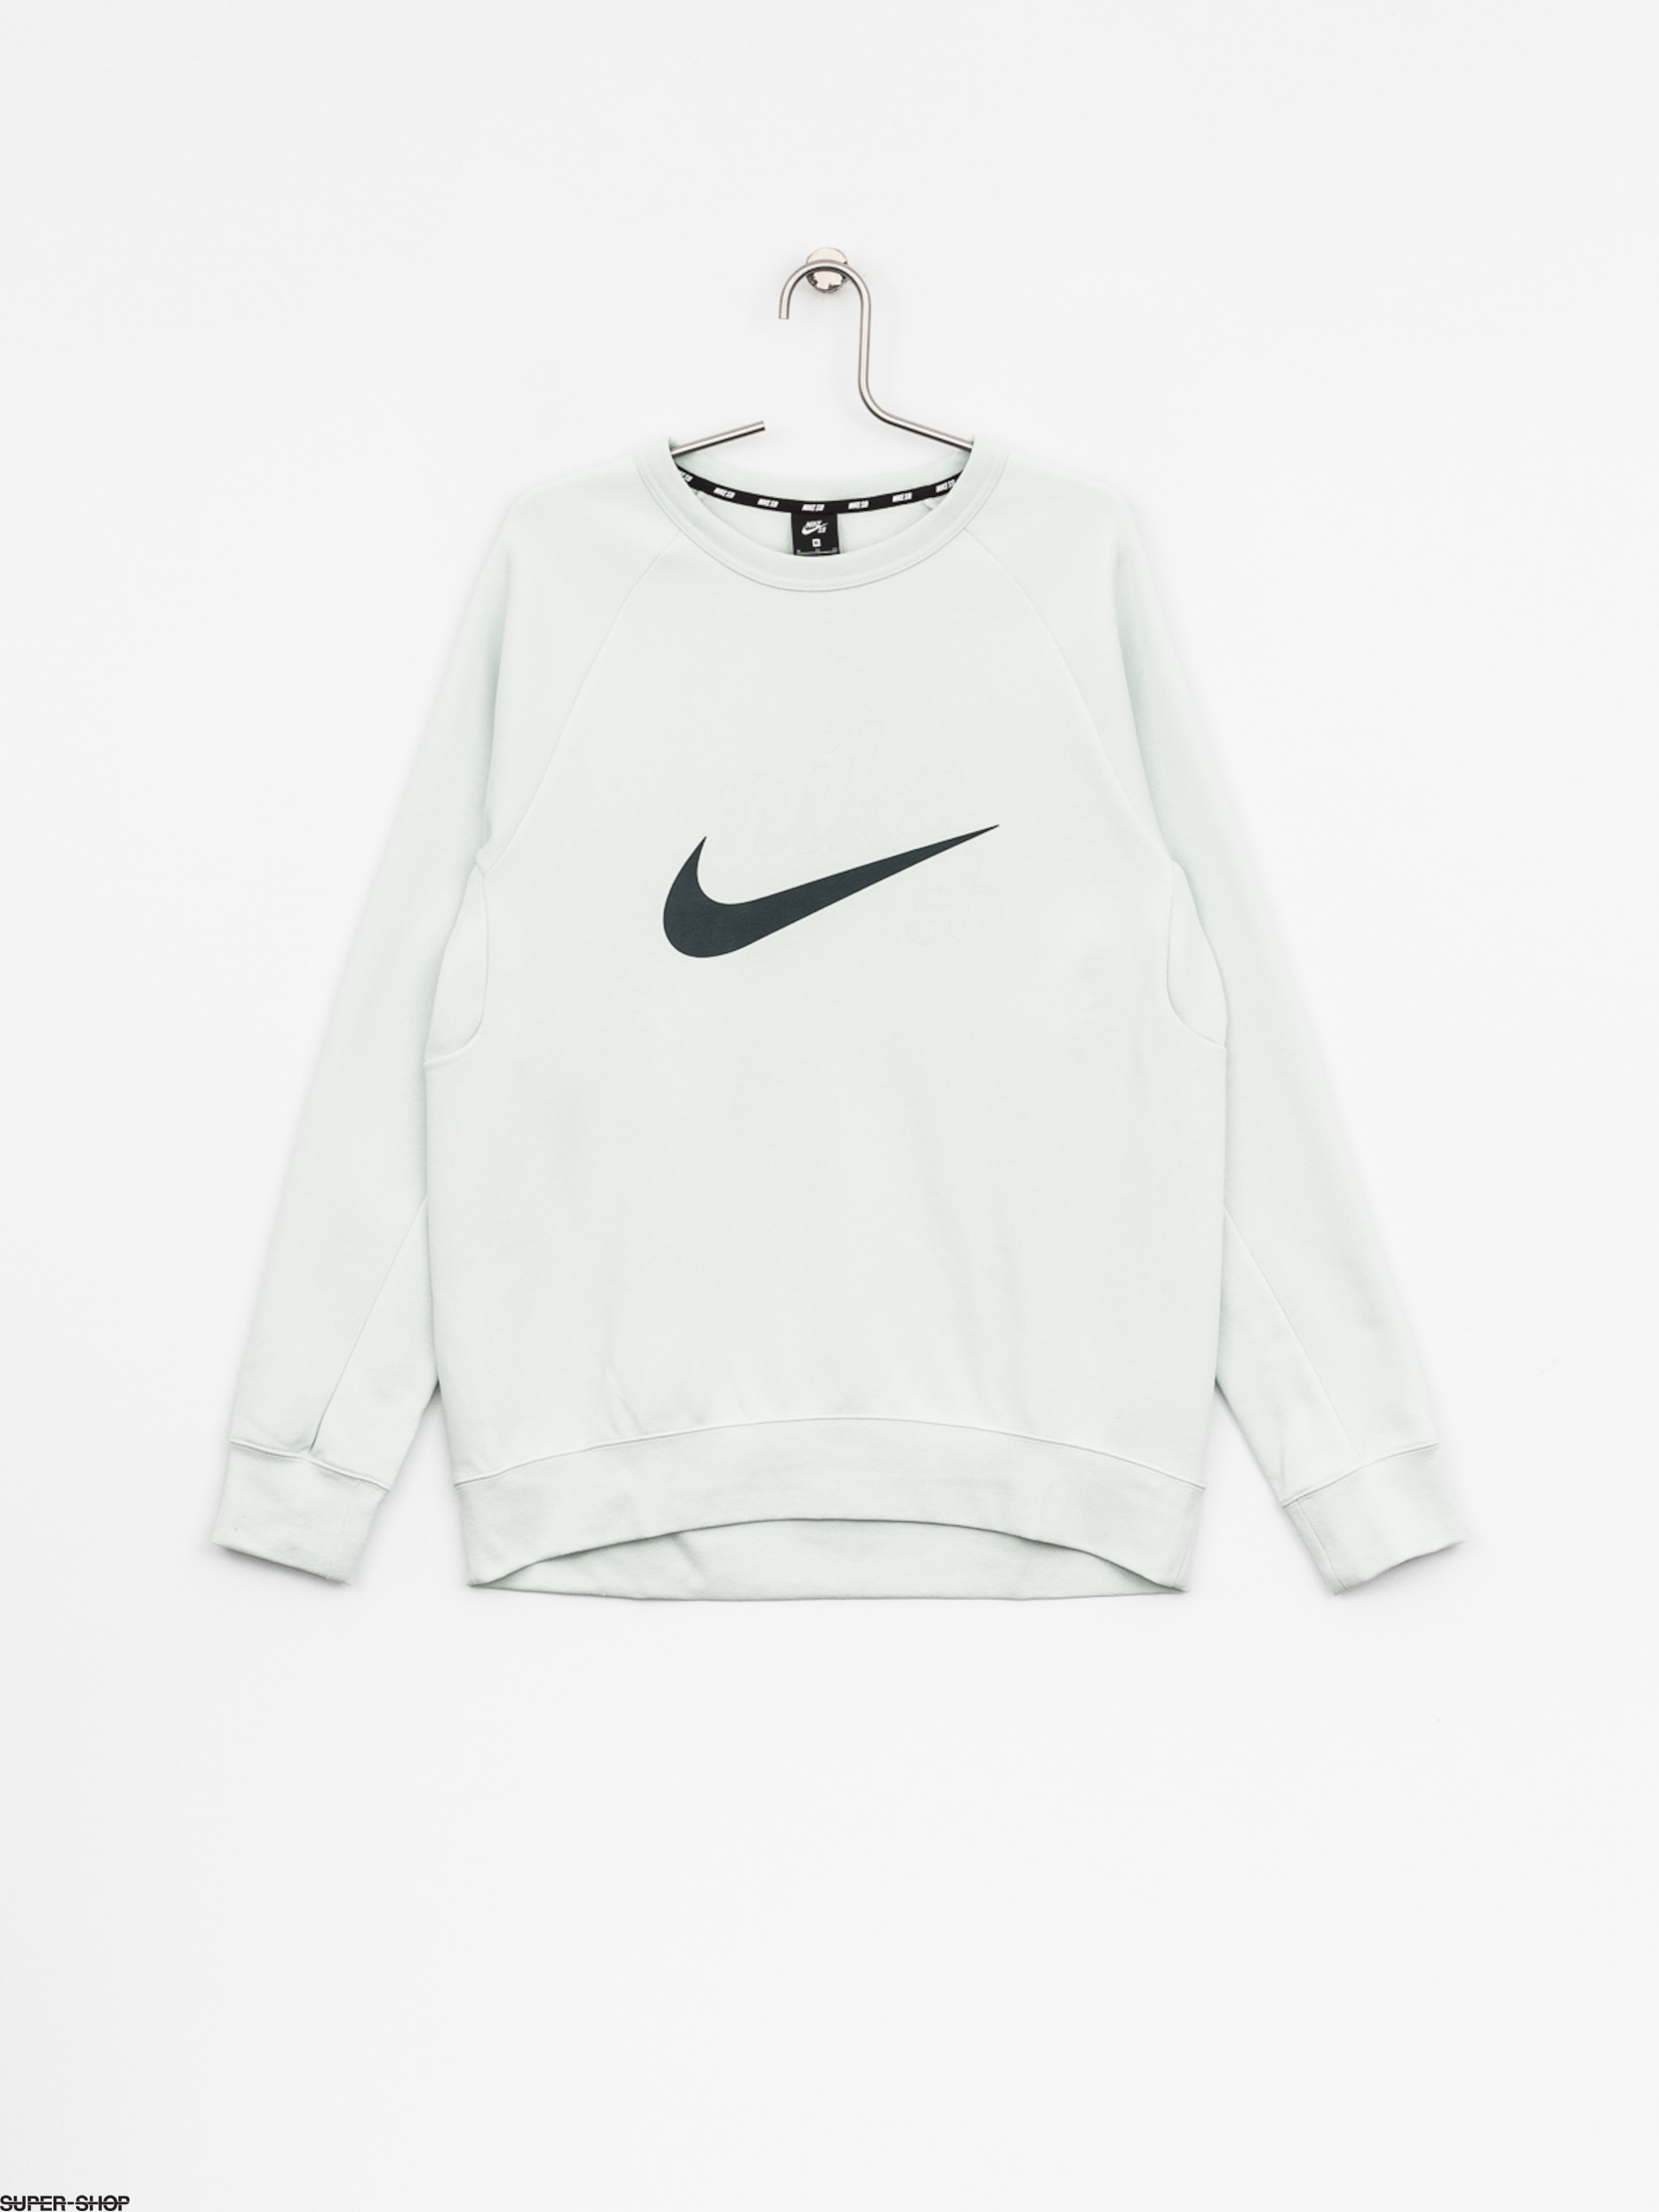 Nike SB Sweatshirt Sb Top Icon Crw Gfx Hrtg (barely grey/deep jungle)